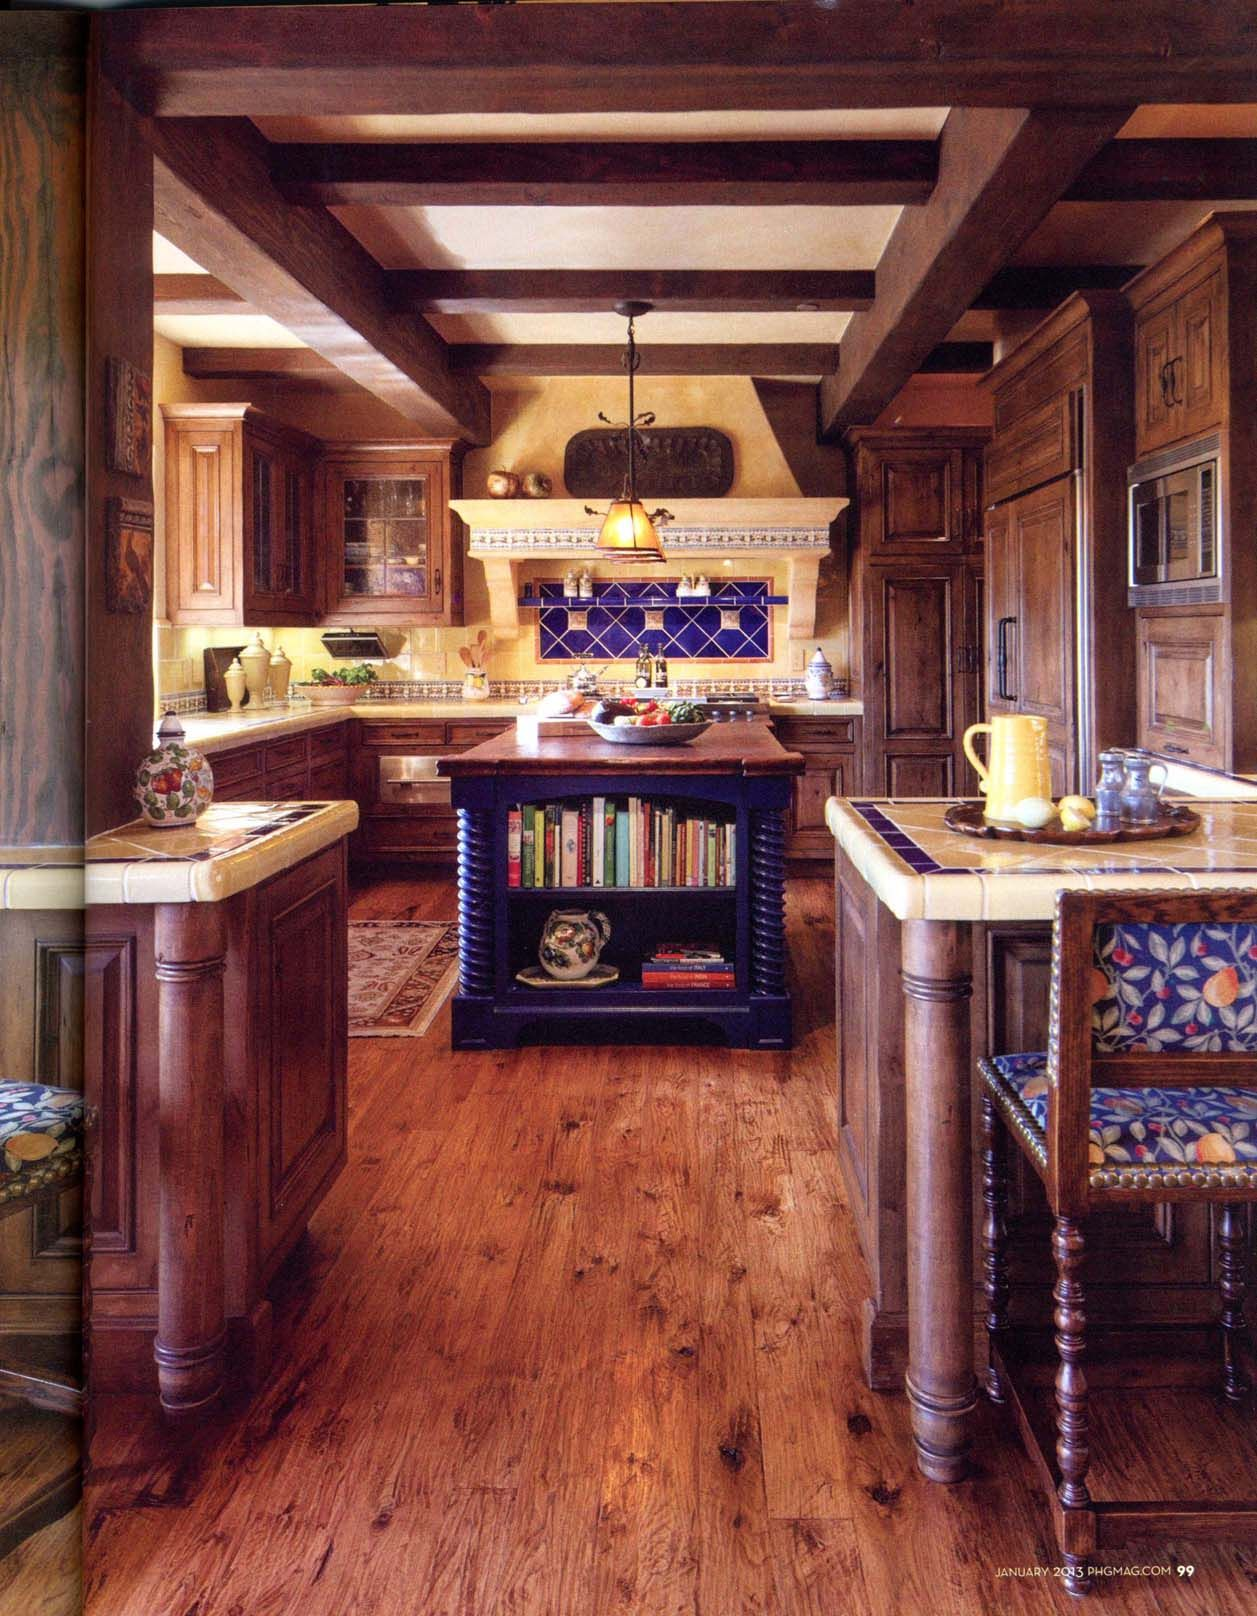 Best Kitchen Gallery: Cocina Mexicana … Pinteres… of Kitchen Cabinets Made In Mexico on rachelxblog.com